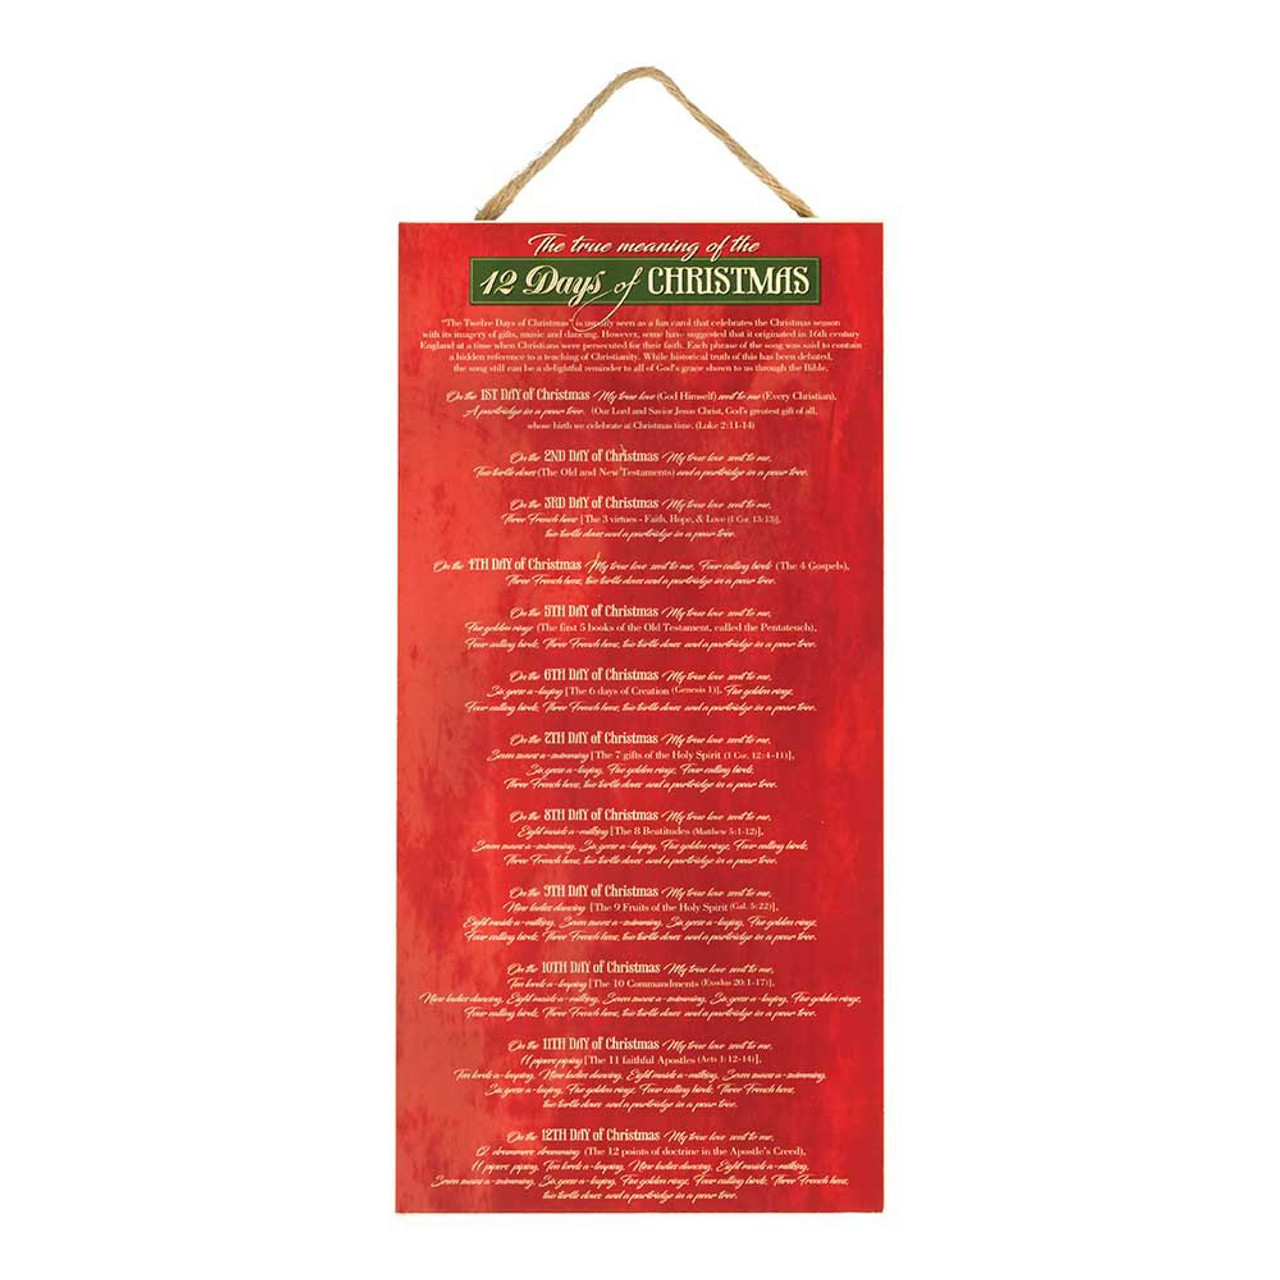 The 12 Days Of Christmas.12 Days Of Christmas Wall Plaque True Meaning 16 Wood Dichplqh816101